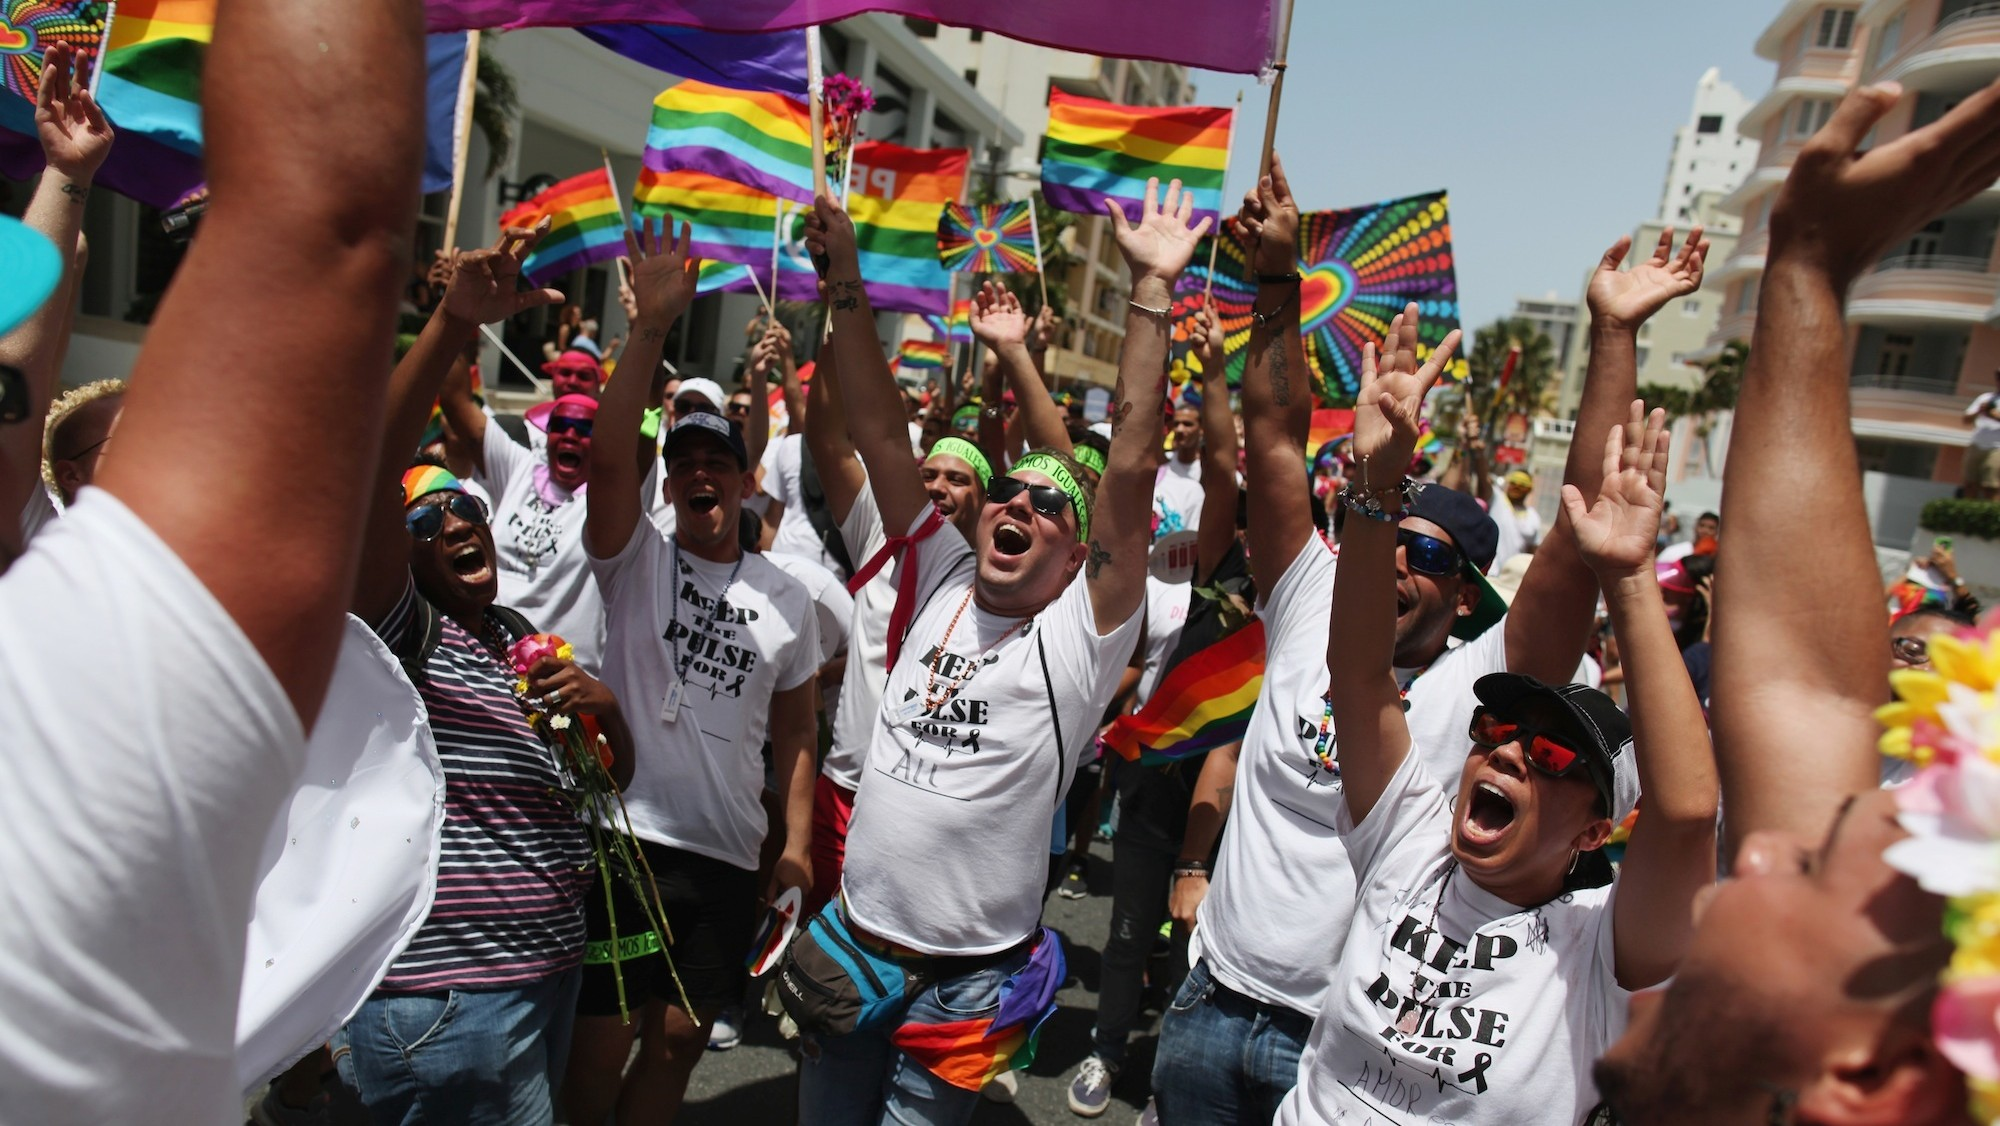 In photos: Pride celebrations around the world after Orlando